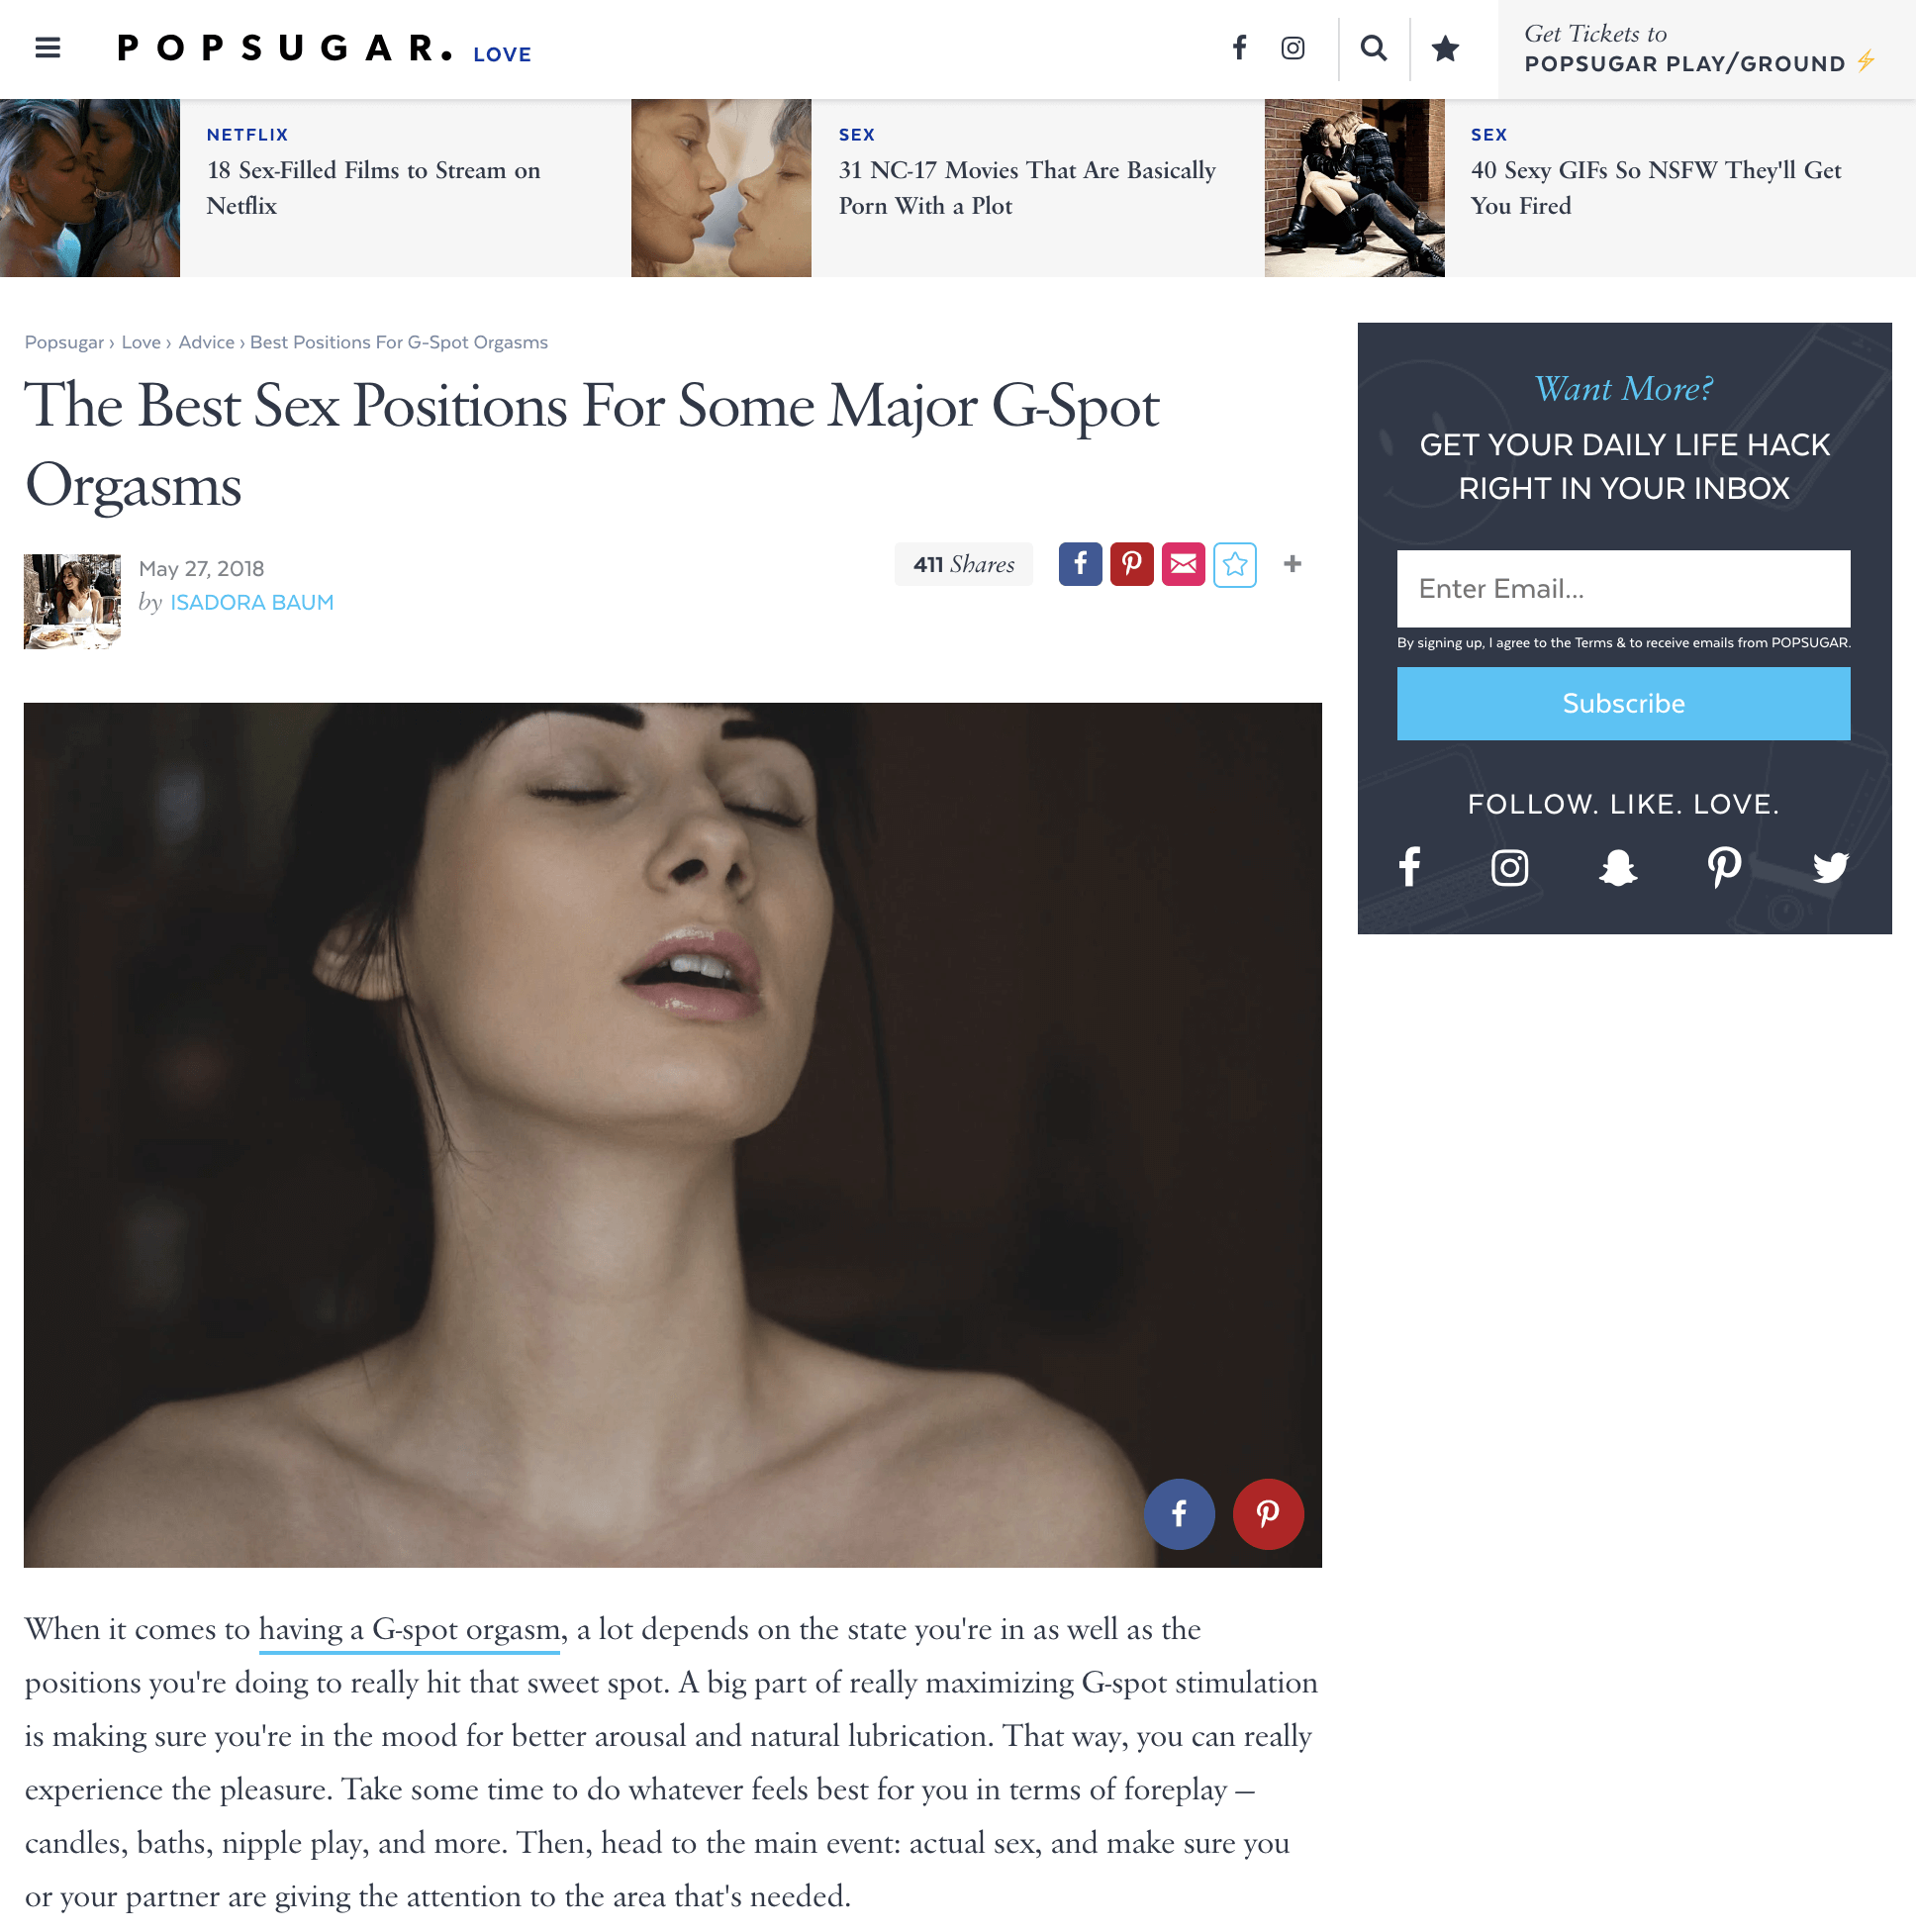 Sex expert Alicia Sinclair shares with Popsugar her top tips on having major G-spot orgasms.